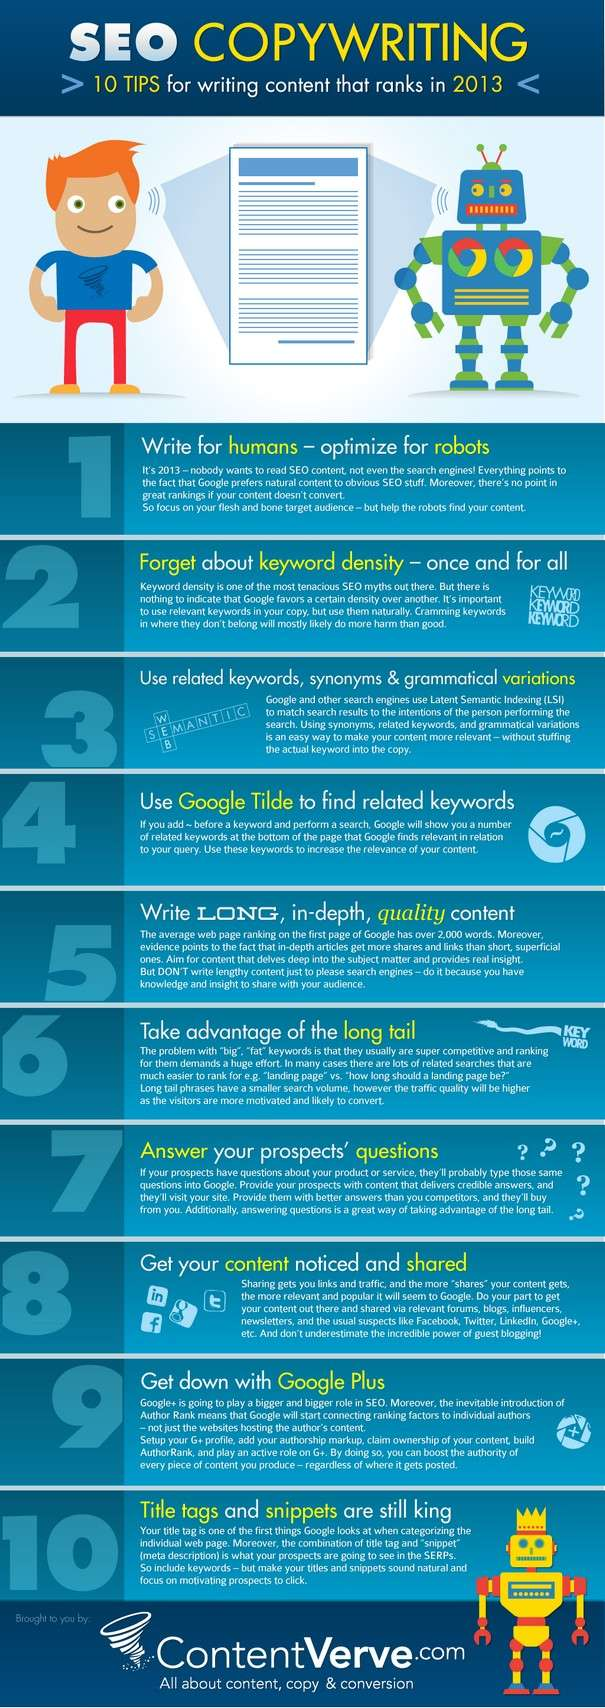 SEO Copywriting 10 Tips for Writing Content that Ranks in 2013 Infographic